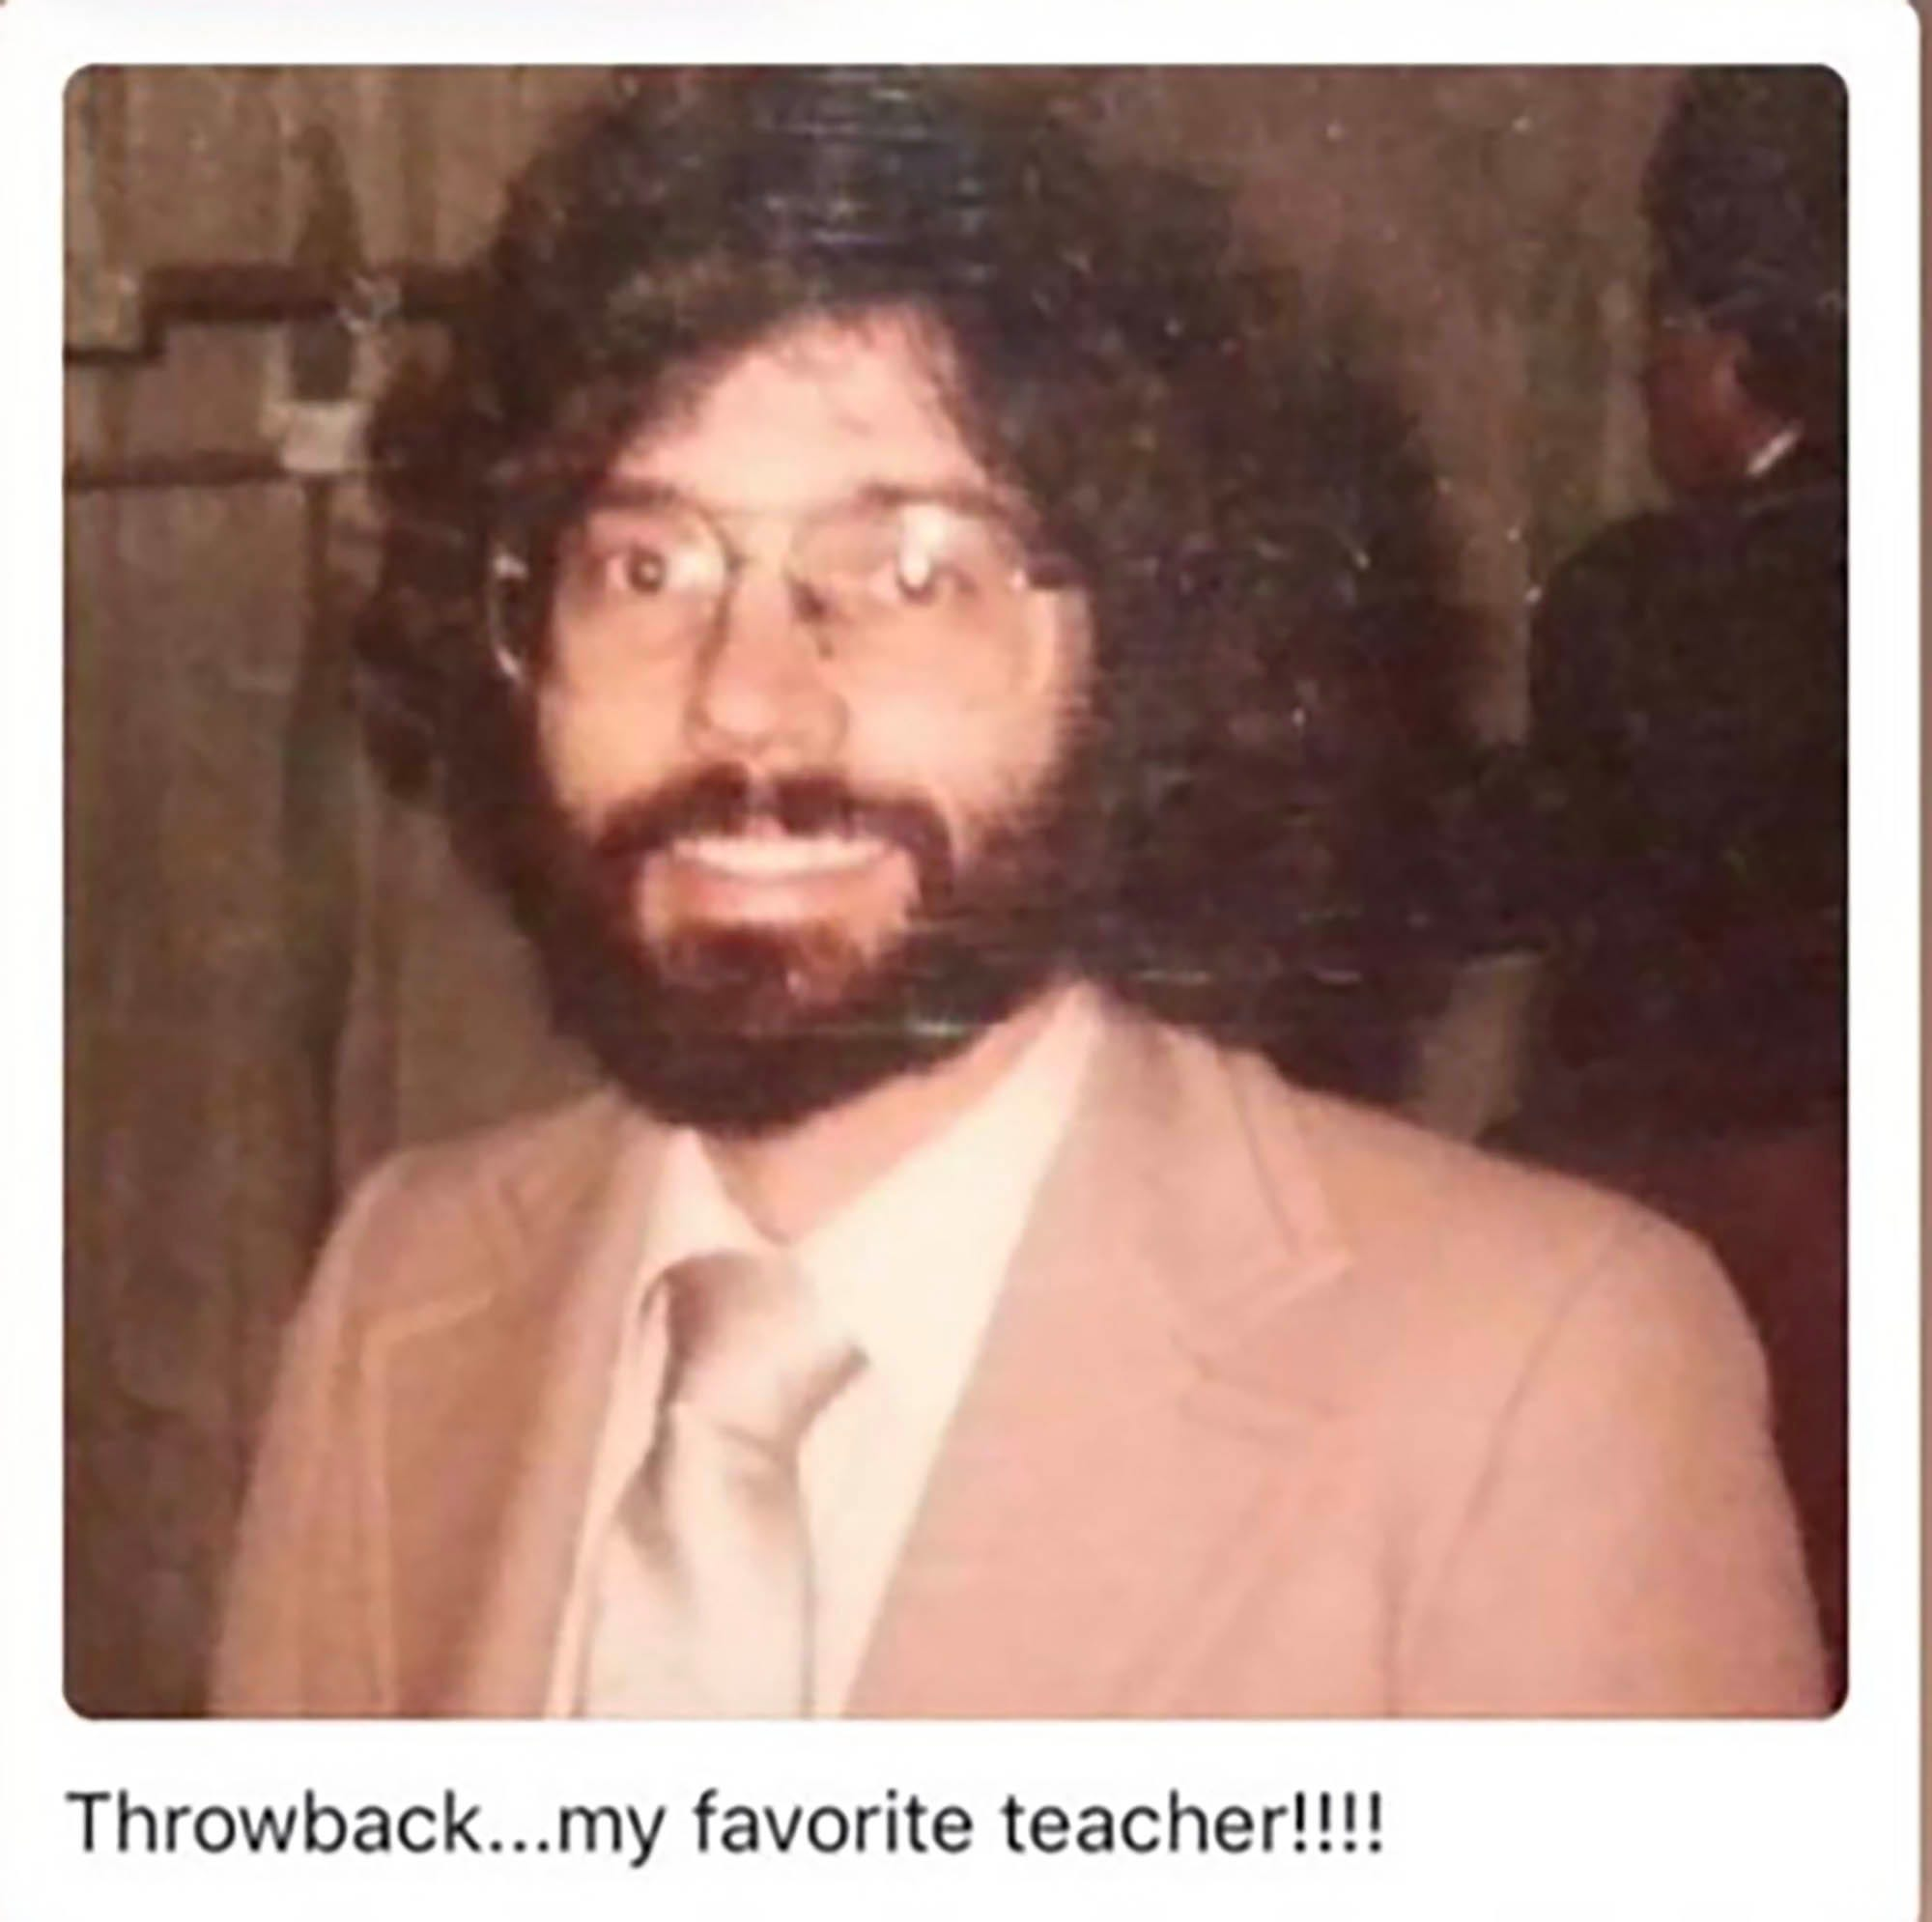 Christopher Holstein, as he looked in 1982 when he was a teacher and Academic Games coach at Longfellow Middle School in Detroit.  (Photo provided by Latrelle Pierre who was an eighth-grader at Longfellow at the time).